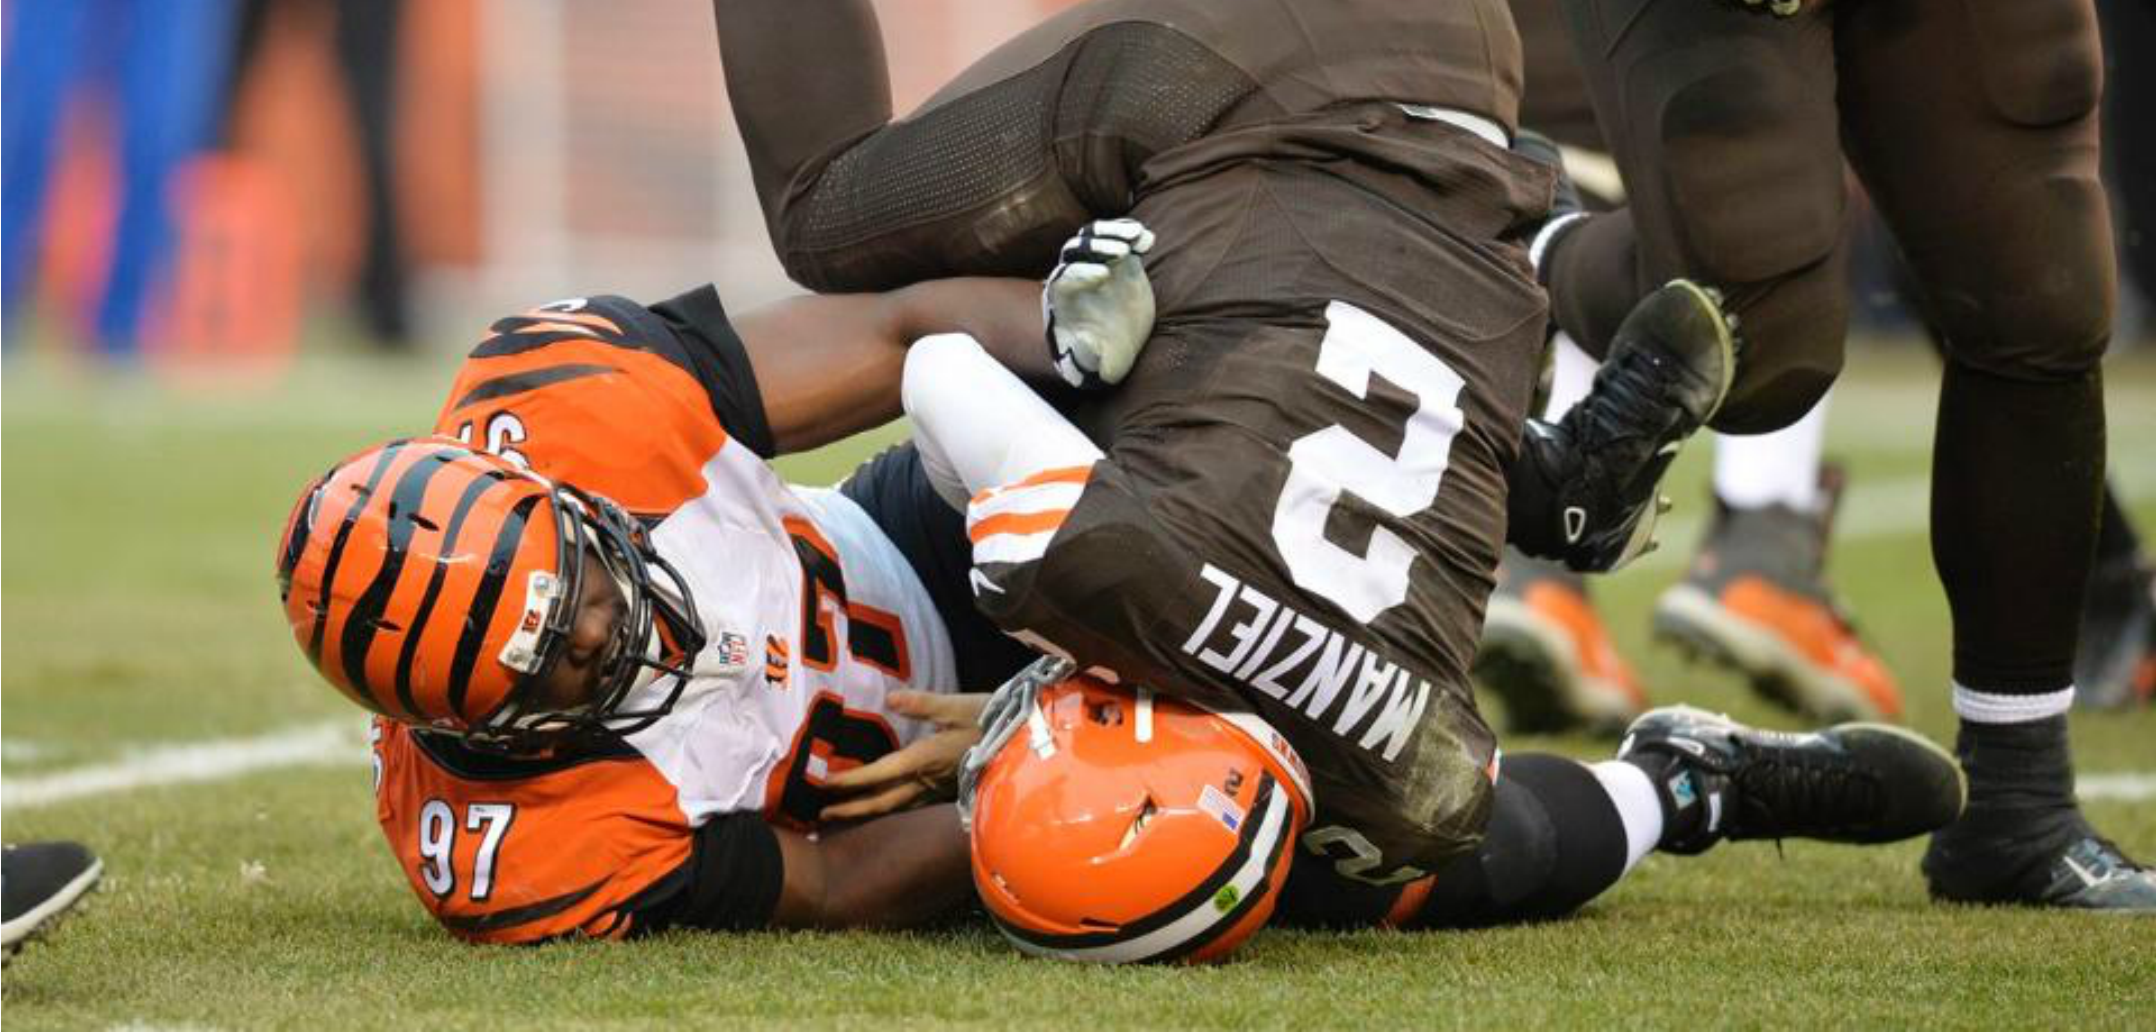 Courtesy of Bengals.com: Manziel wasn't quite ready for what the Bengals had in store for him.